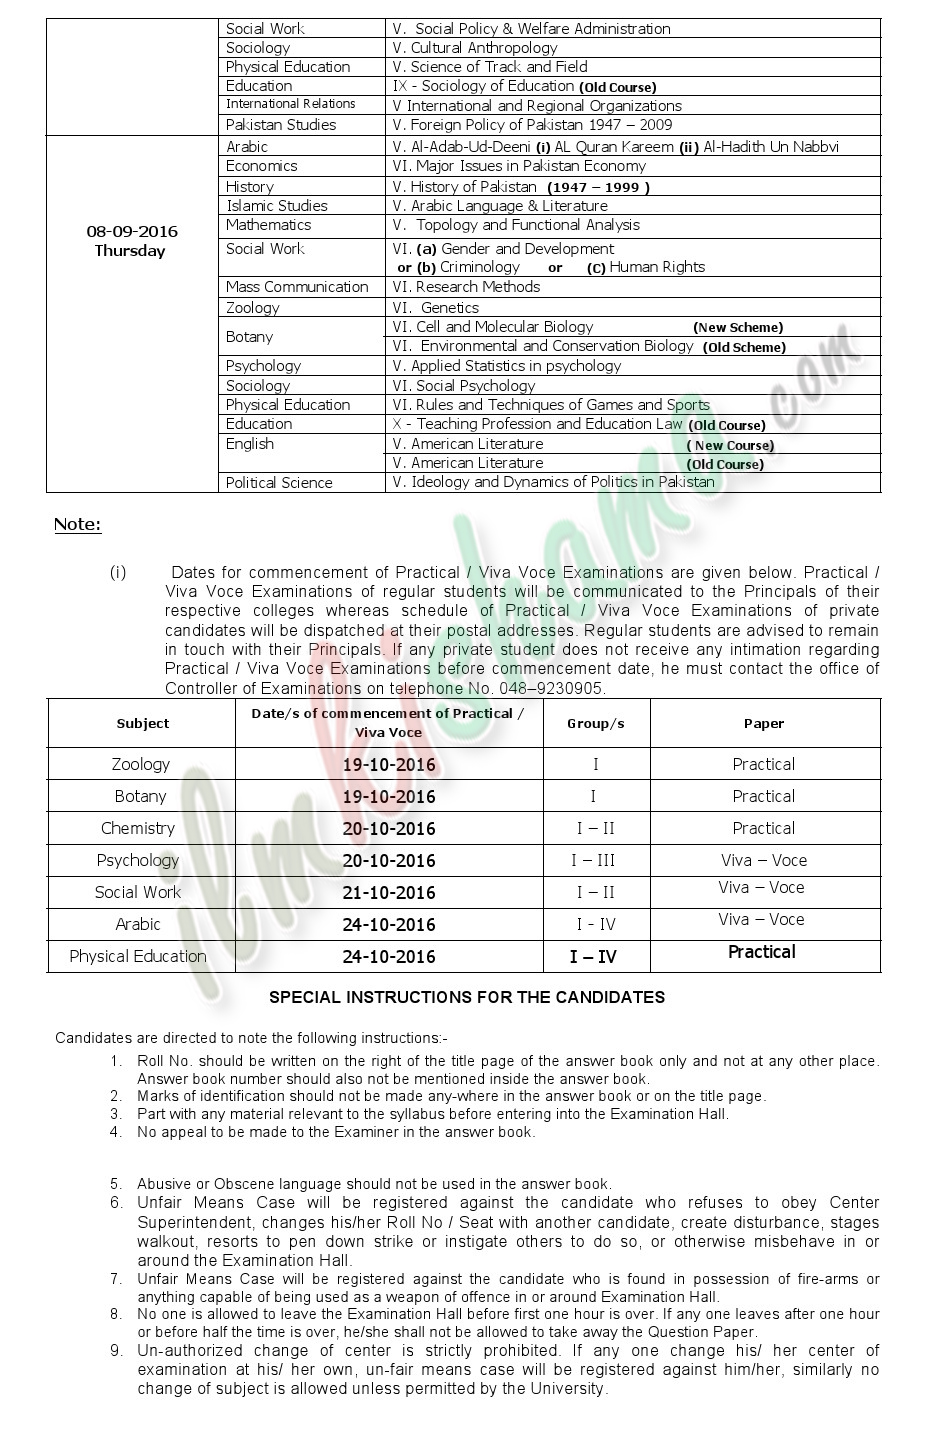 Date Sheet M.AM.Sc Part-I saragodha university 2016 3